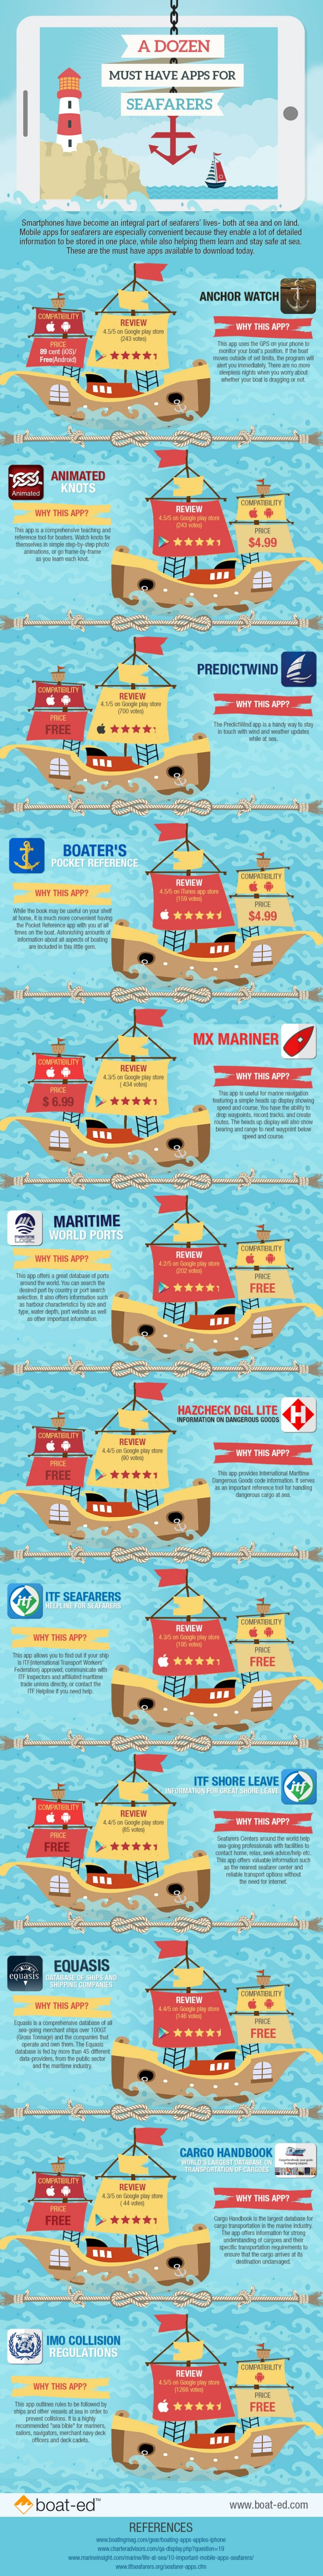 seafarers apps